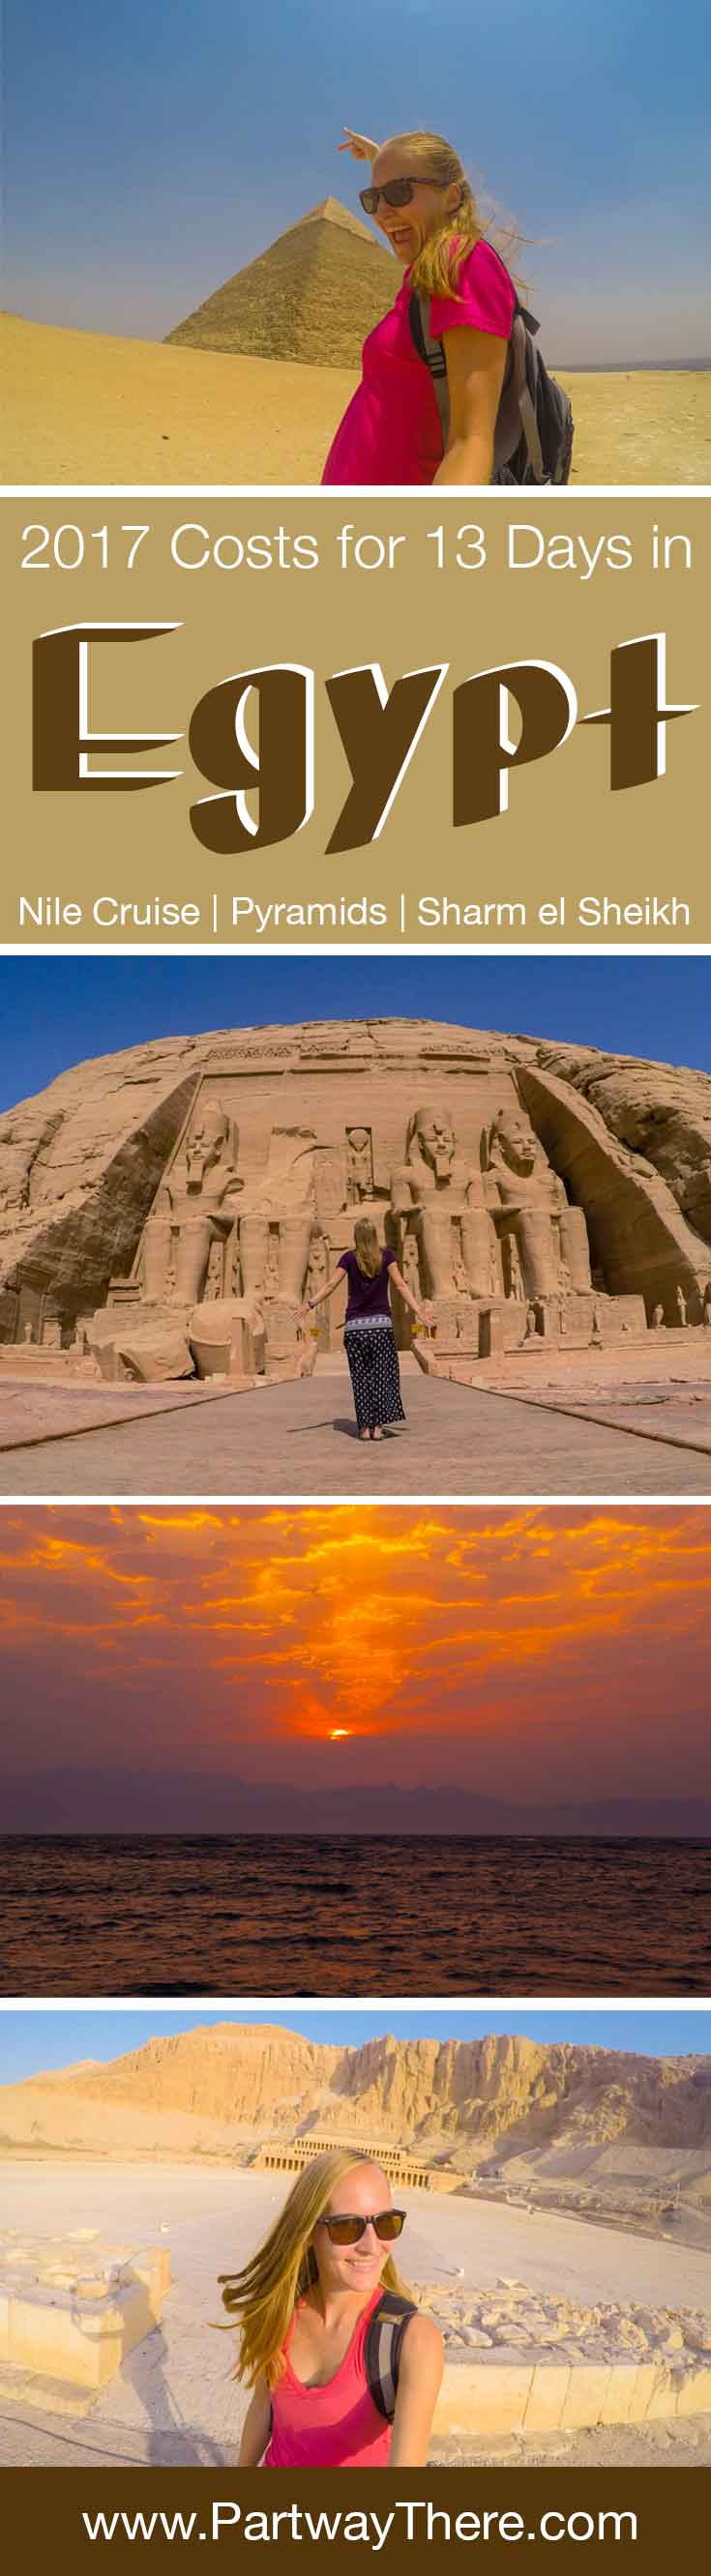 Costs to visit Egypt for 13 days